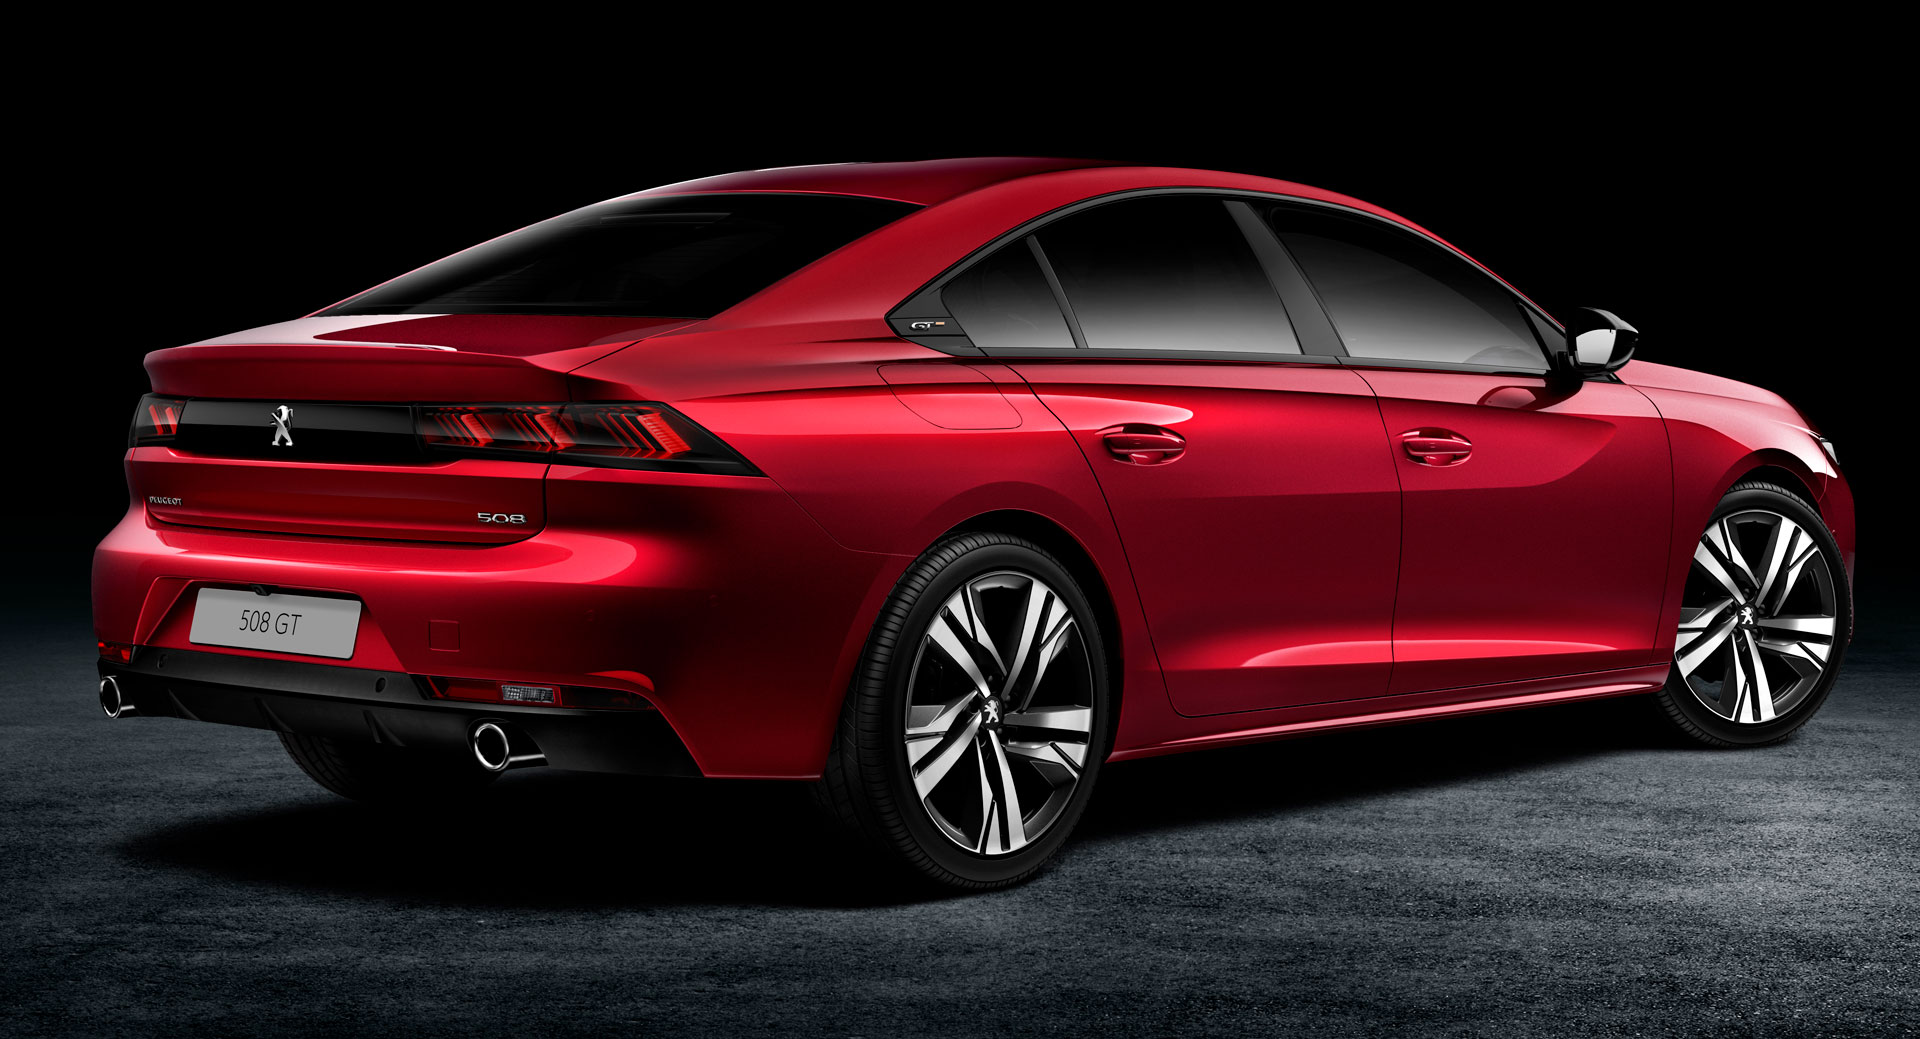 France Car Brand >> 2018 Peugeot 508 Officially Reveals Its Slick Fastback Bodystyle | Carscoops